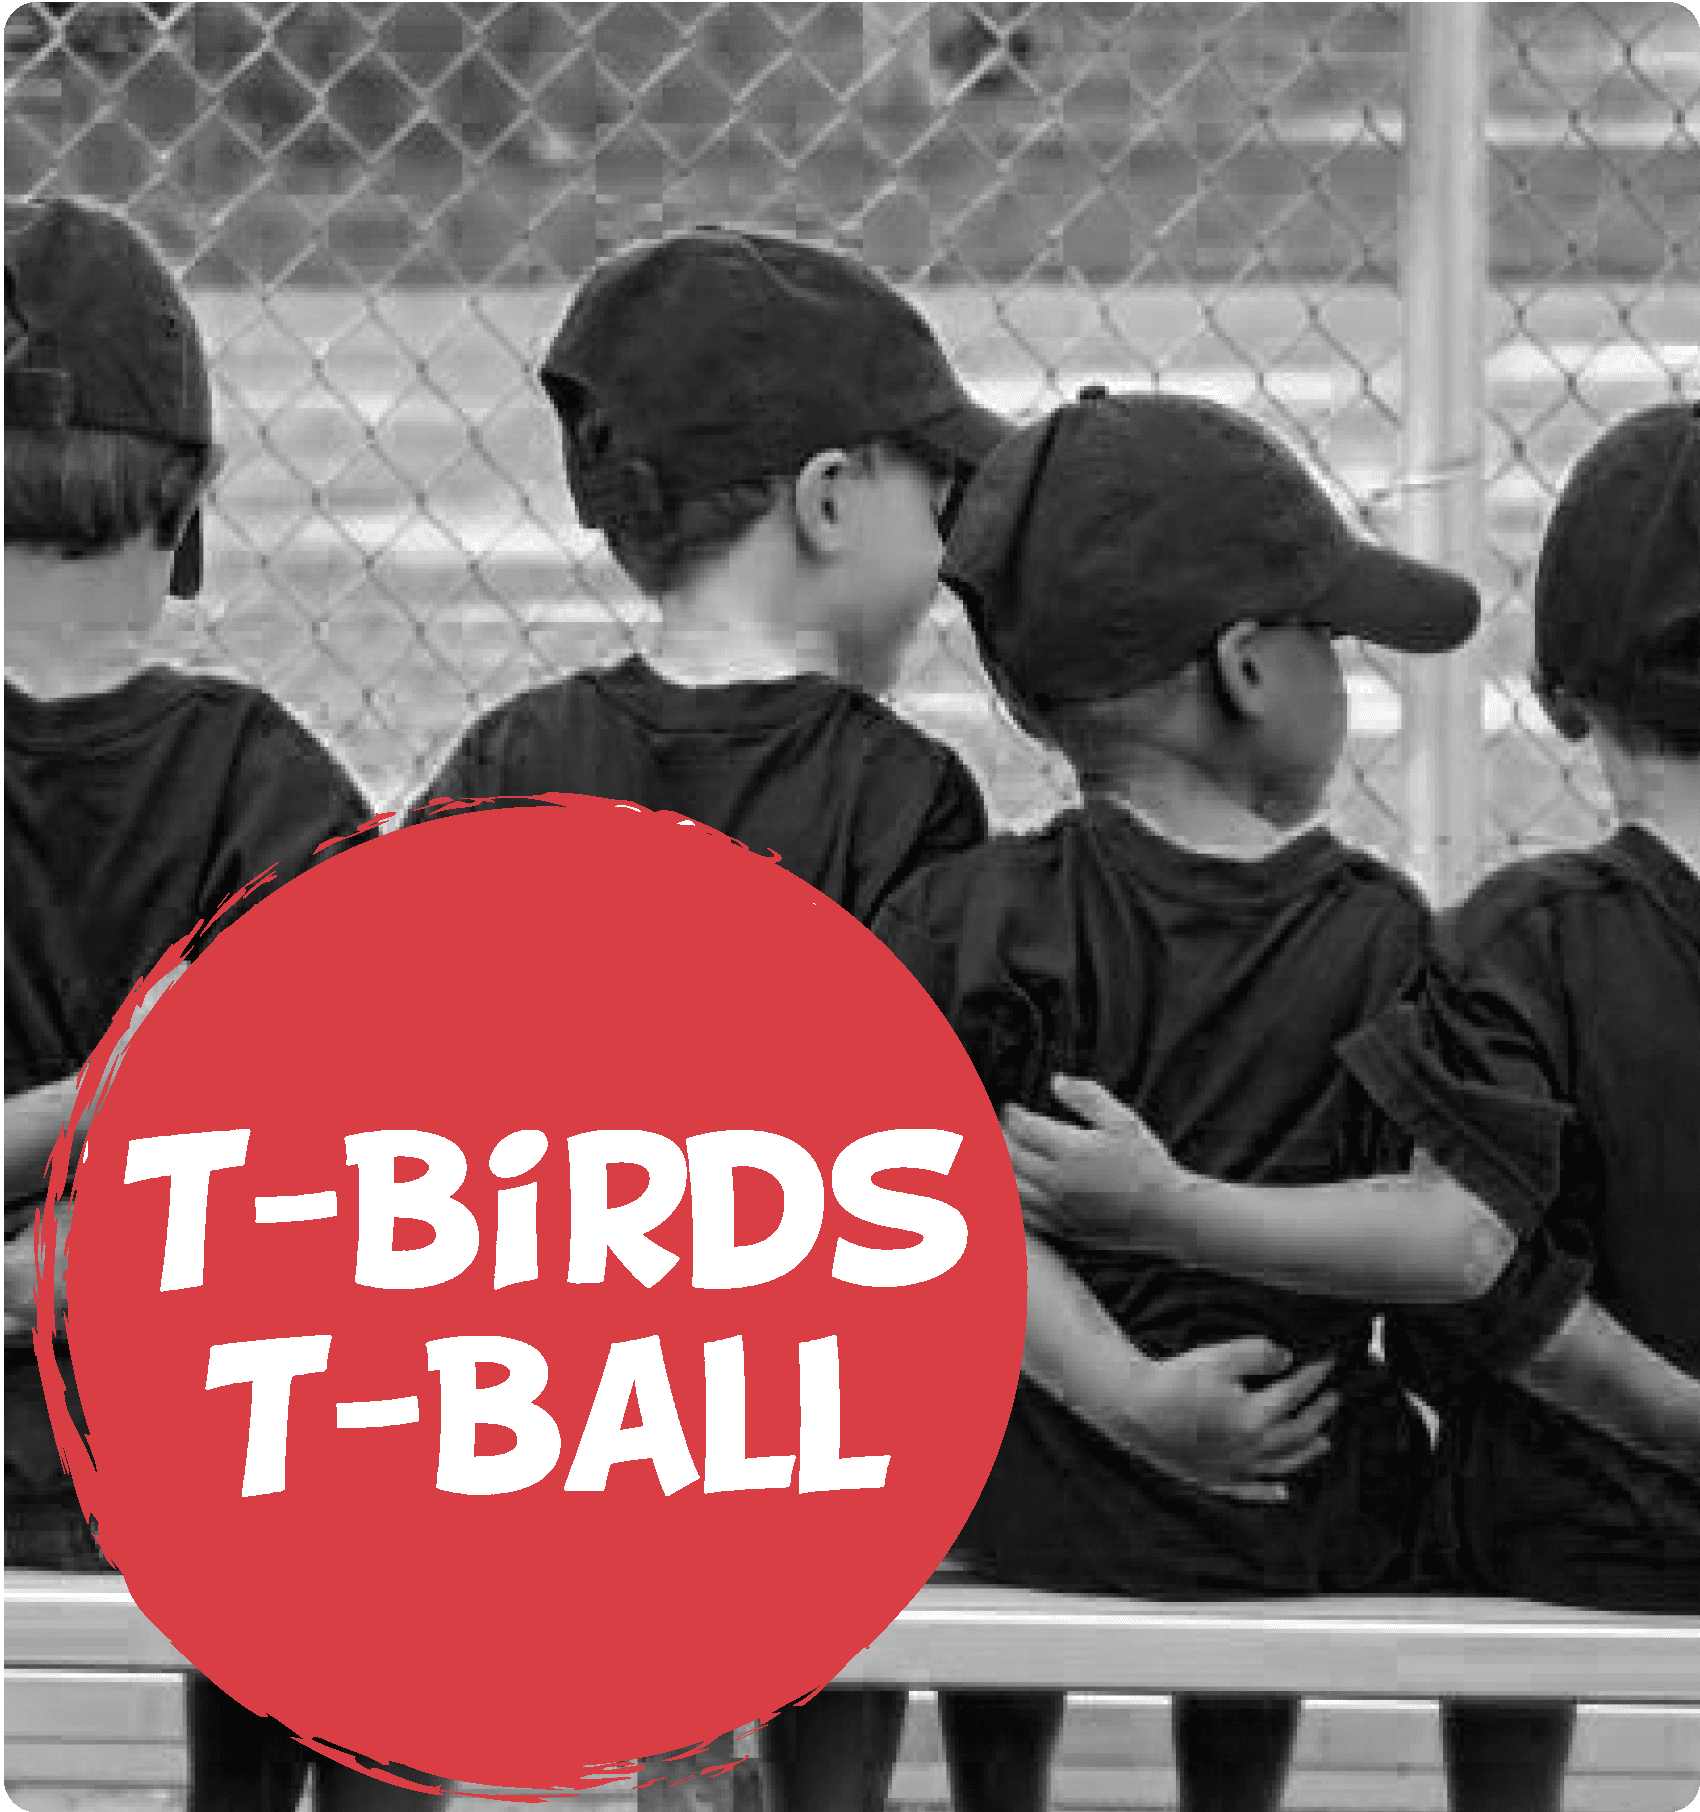 tbirds tball camp